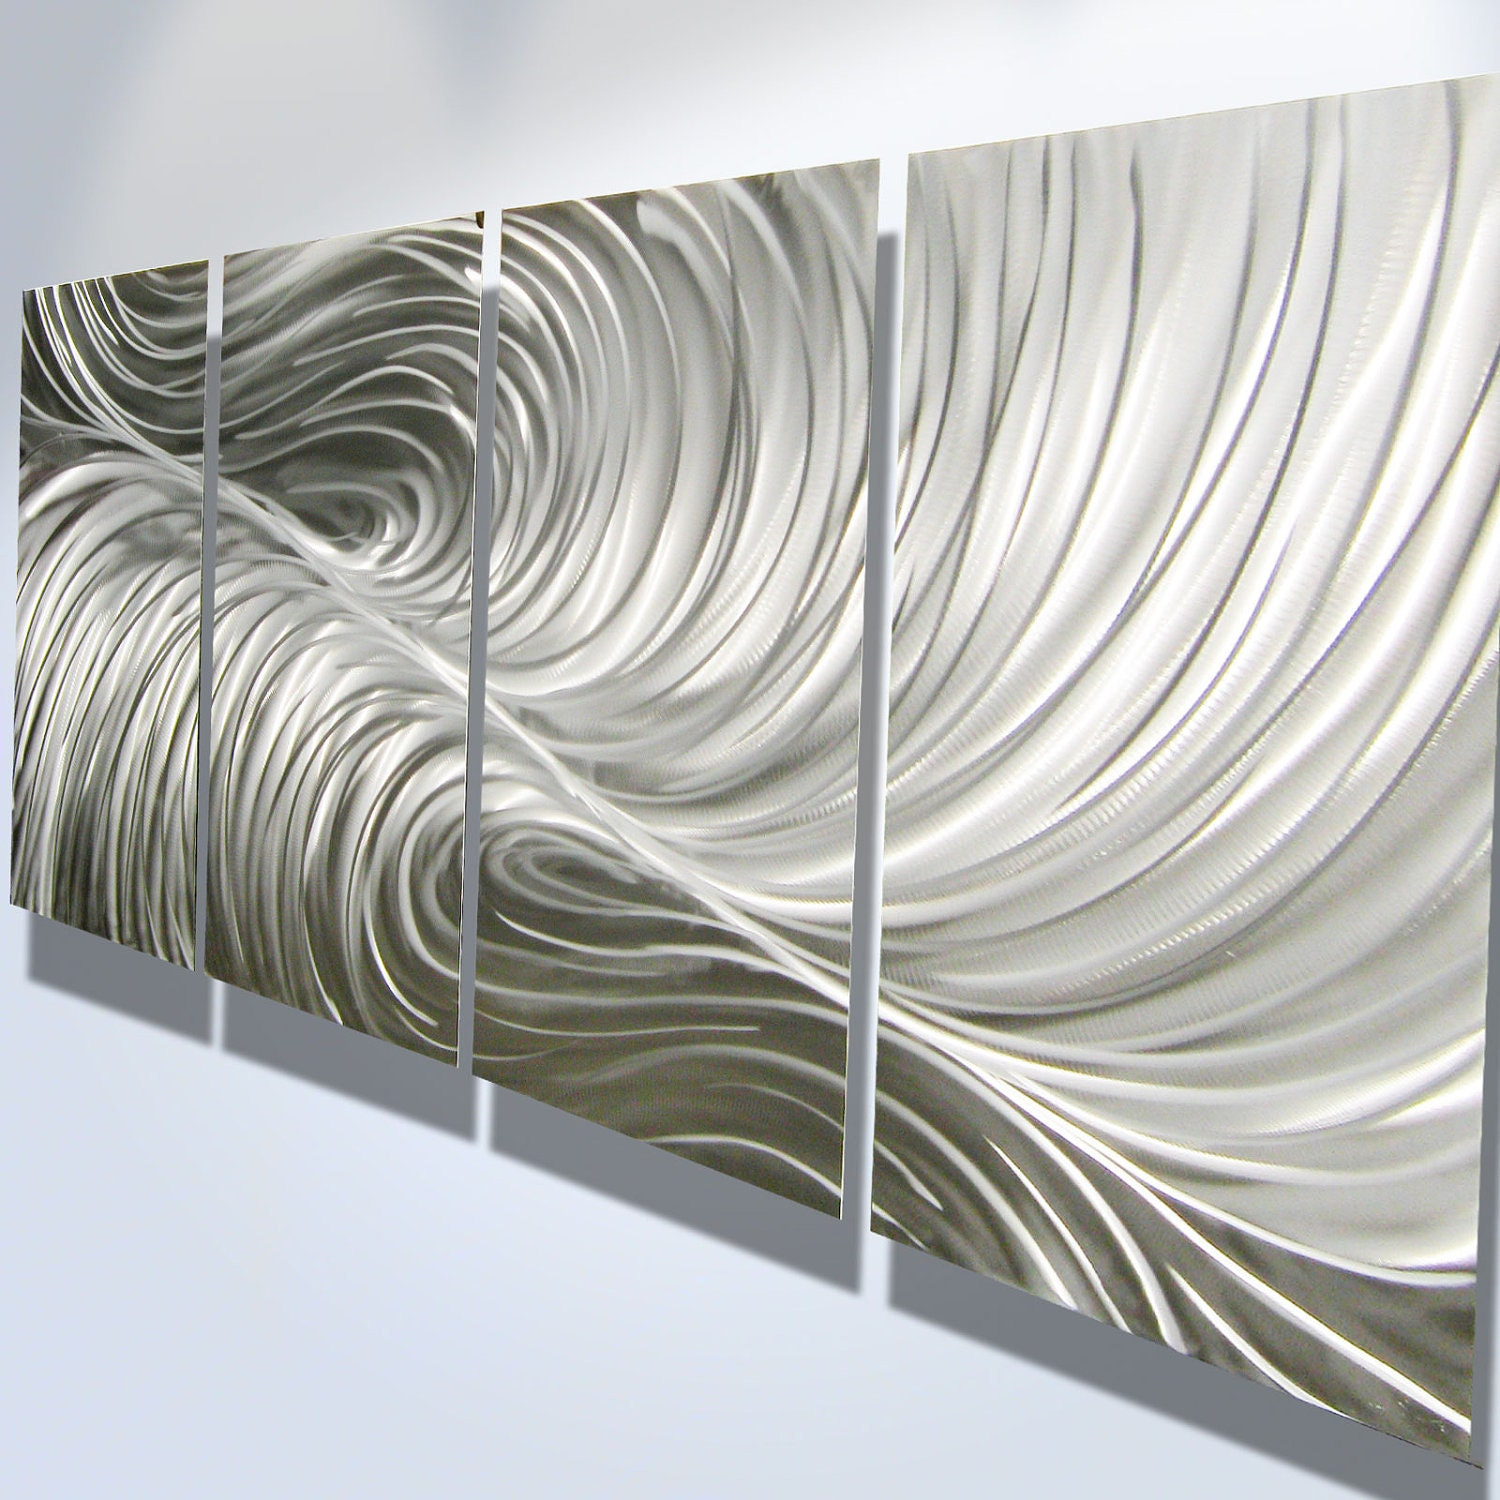 Metal Wall Art Decor Abstract : Metal wall art decor abstract contemporary modern by